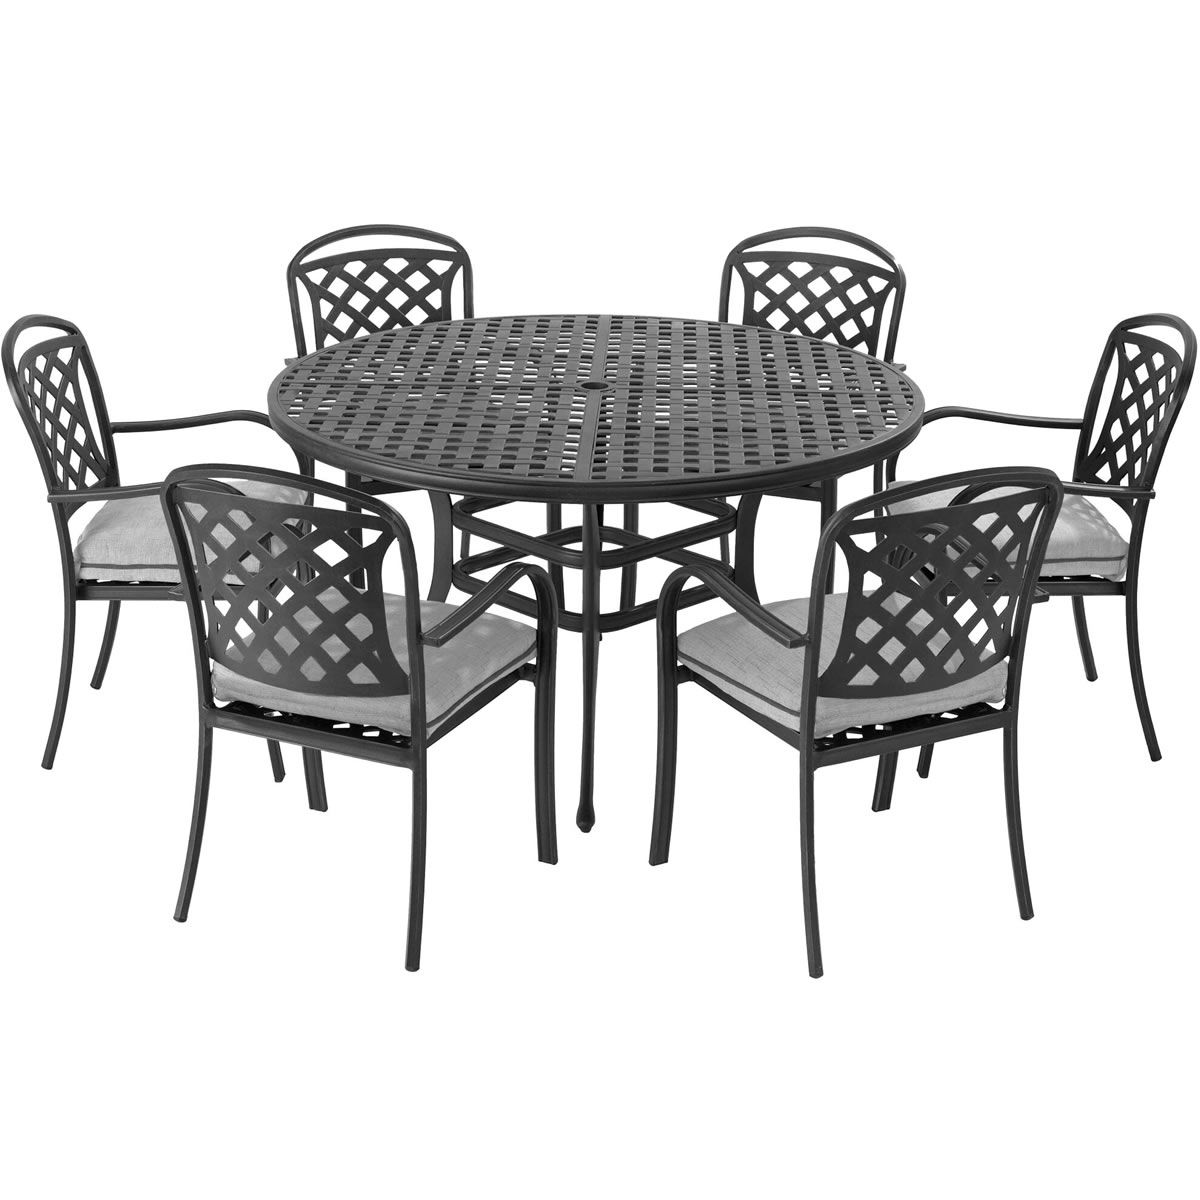 Superb Find This Pin And More On New House Garden/exterior. Part Of Our Extensive  Range, The Hartman Berkeley 6 Seater Round Furniture ...